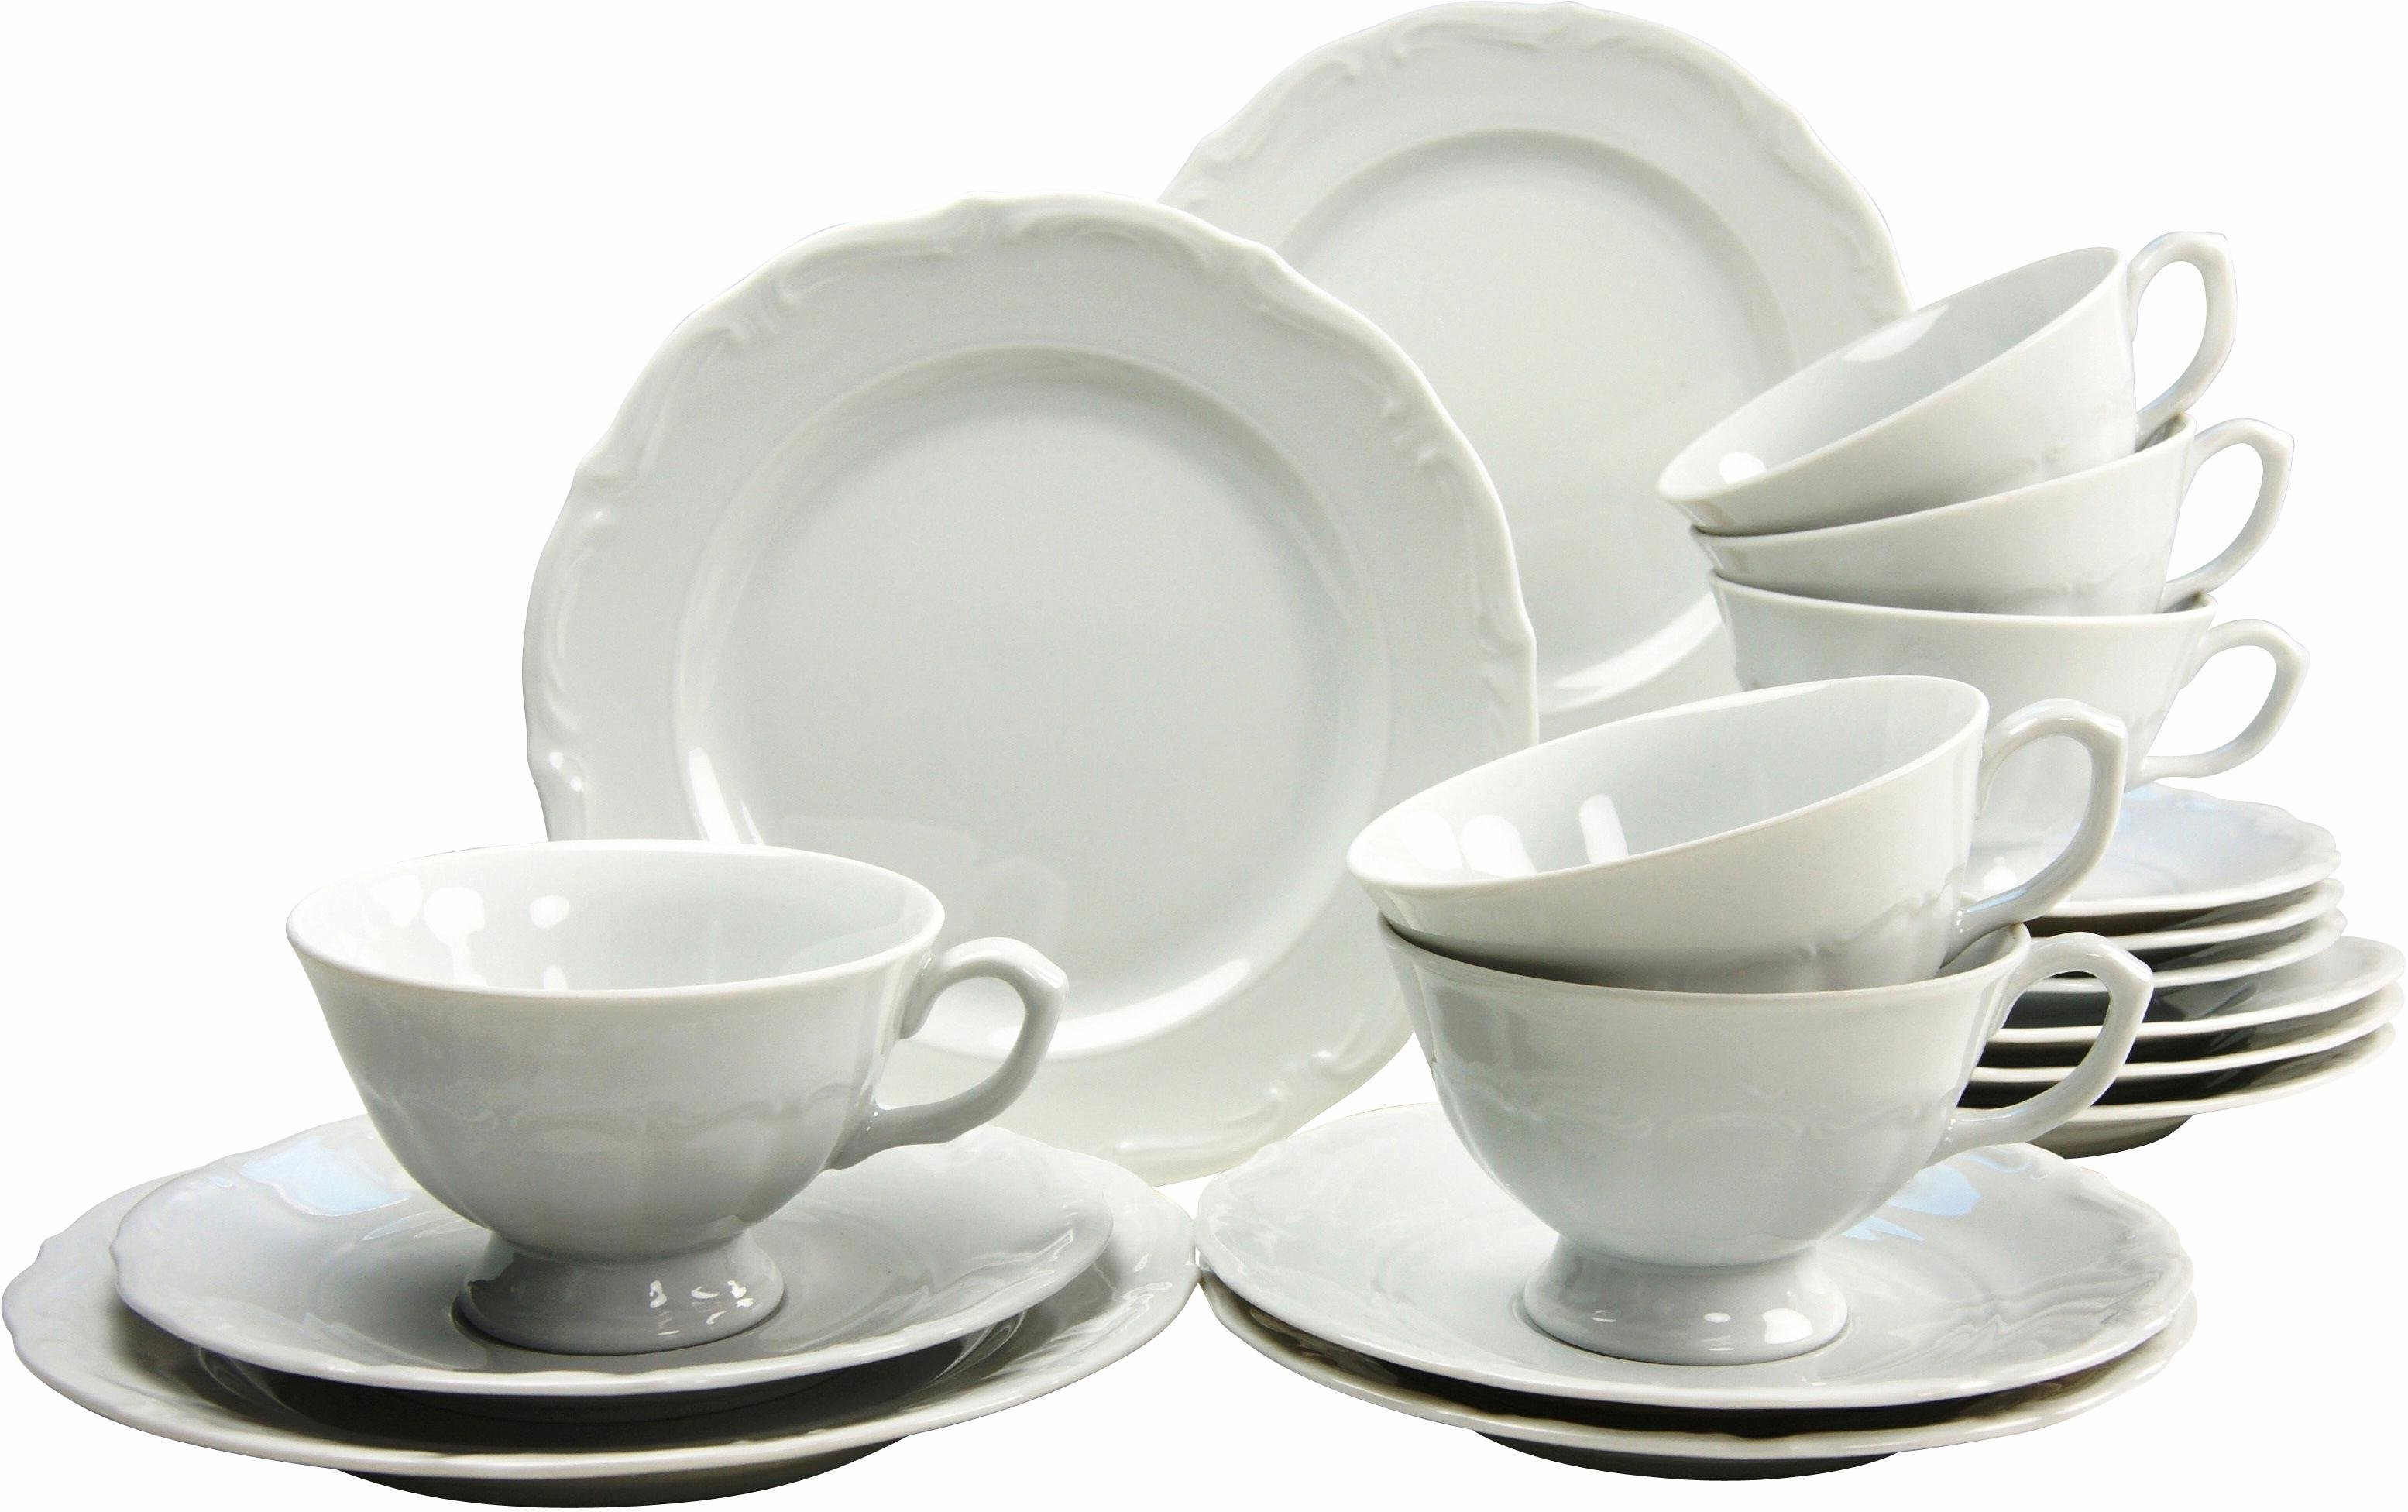 CreaTable koffieservies 'Maria Theresia' (18-delig) online kopen op otto.nl